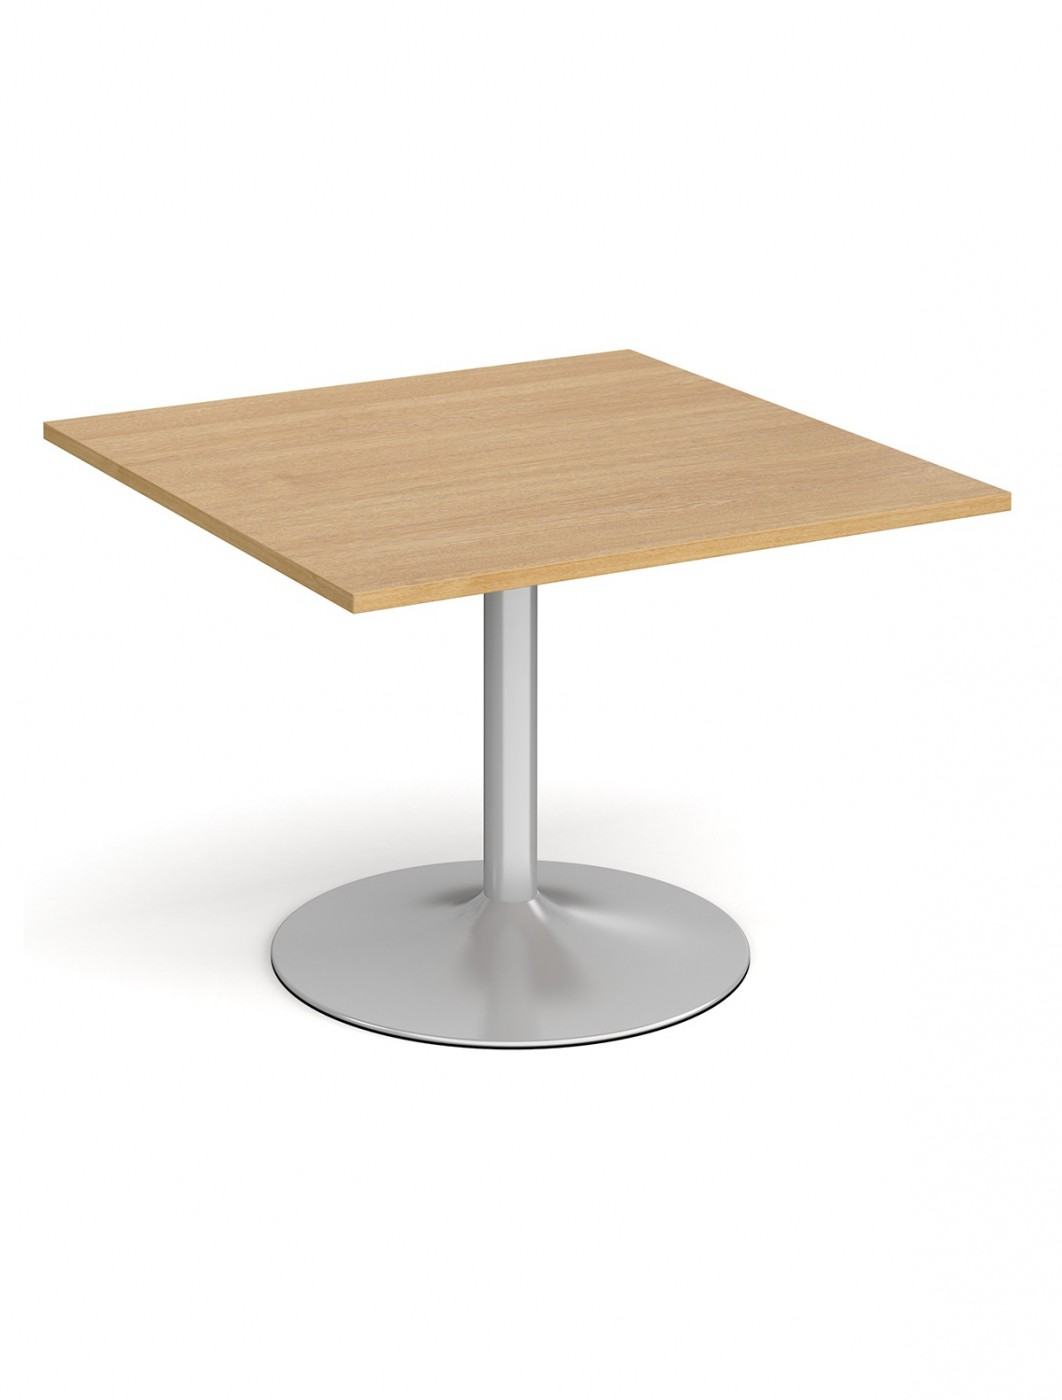 Dams Square Extension Table with Silver Trumpet Base TB10-S